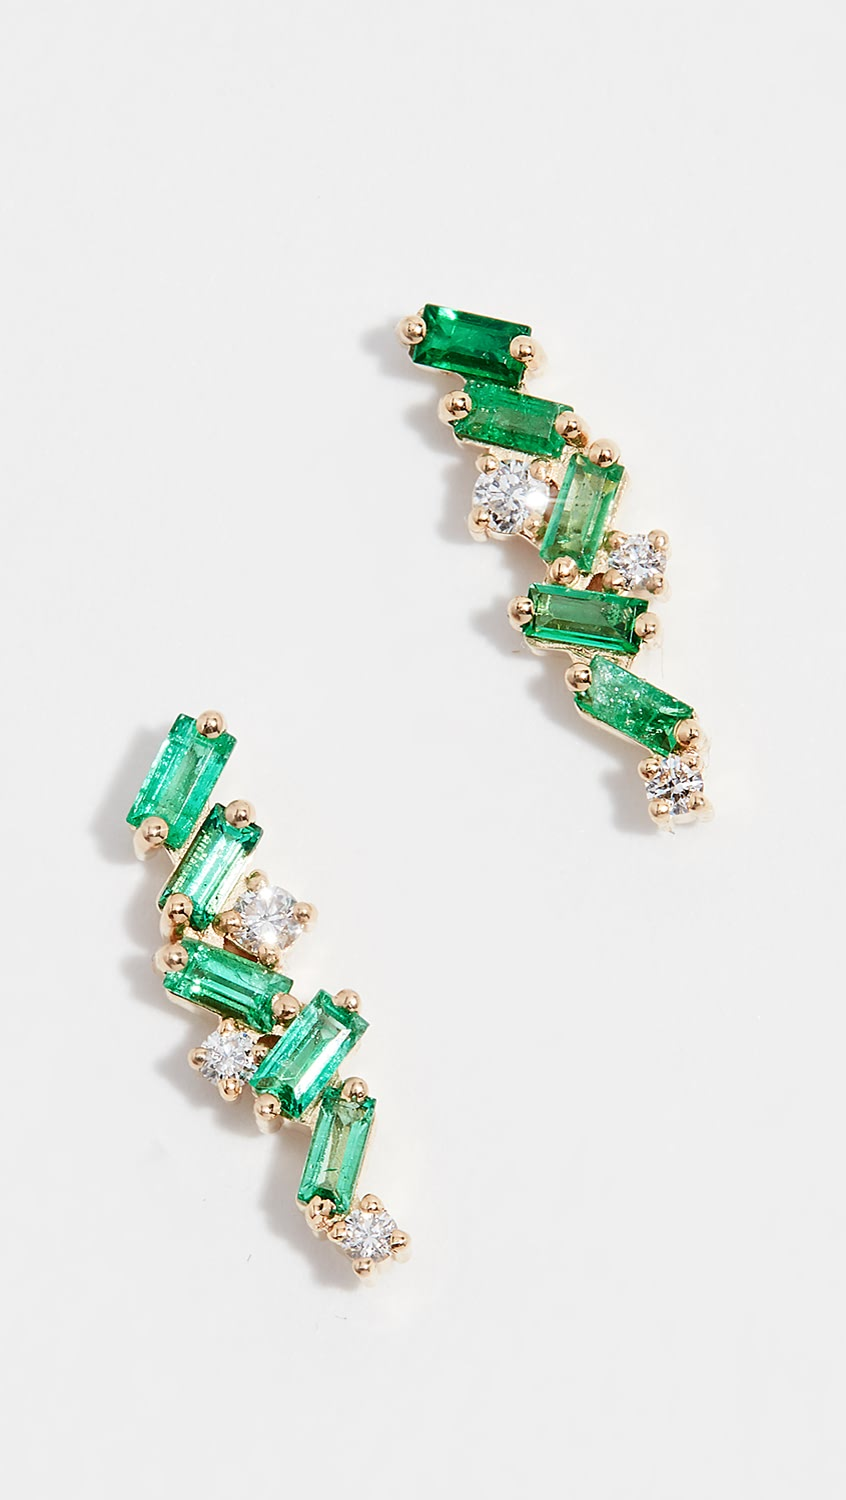 100% True Suzanne Kalan - 18k Gold Emerald Cluster Stud Earrings Cleaning The Oral Cavity.